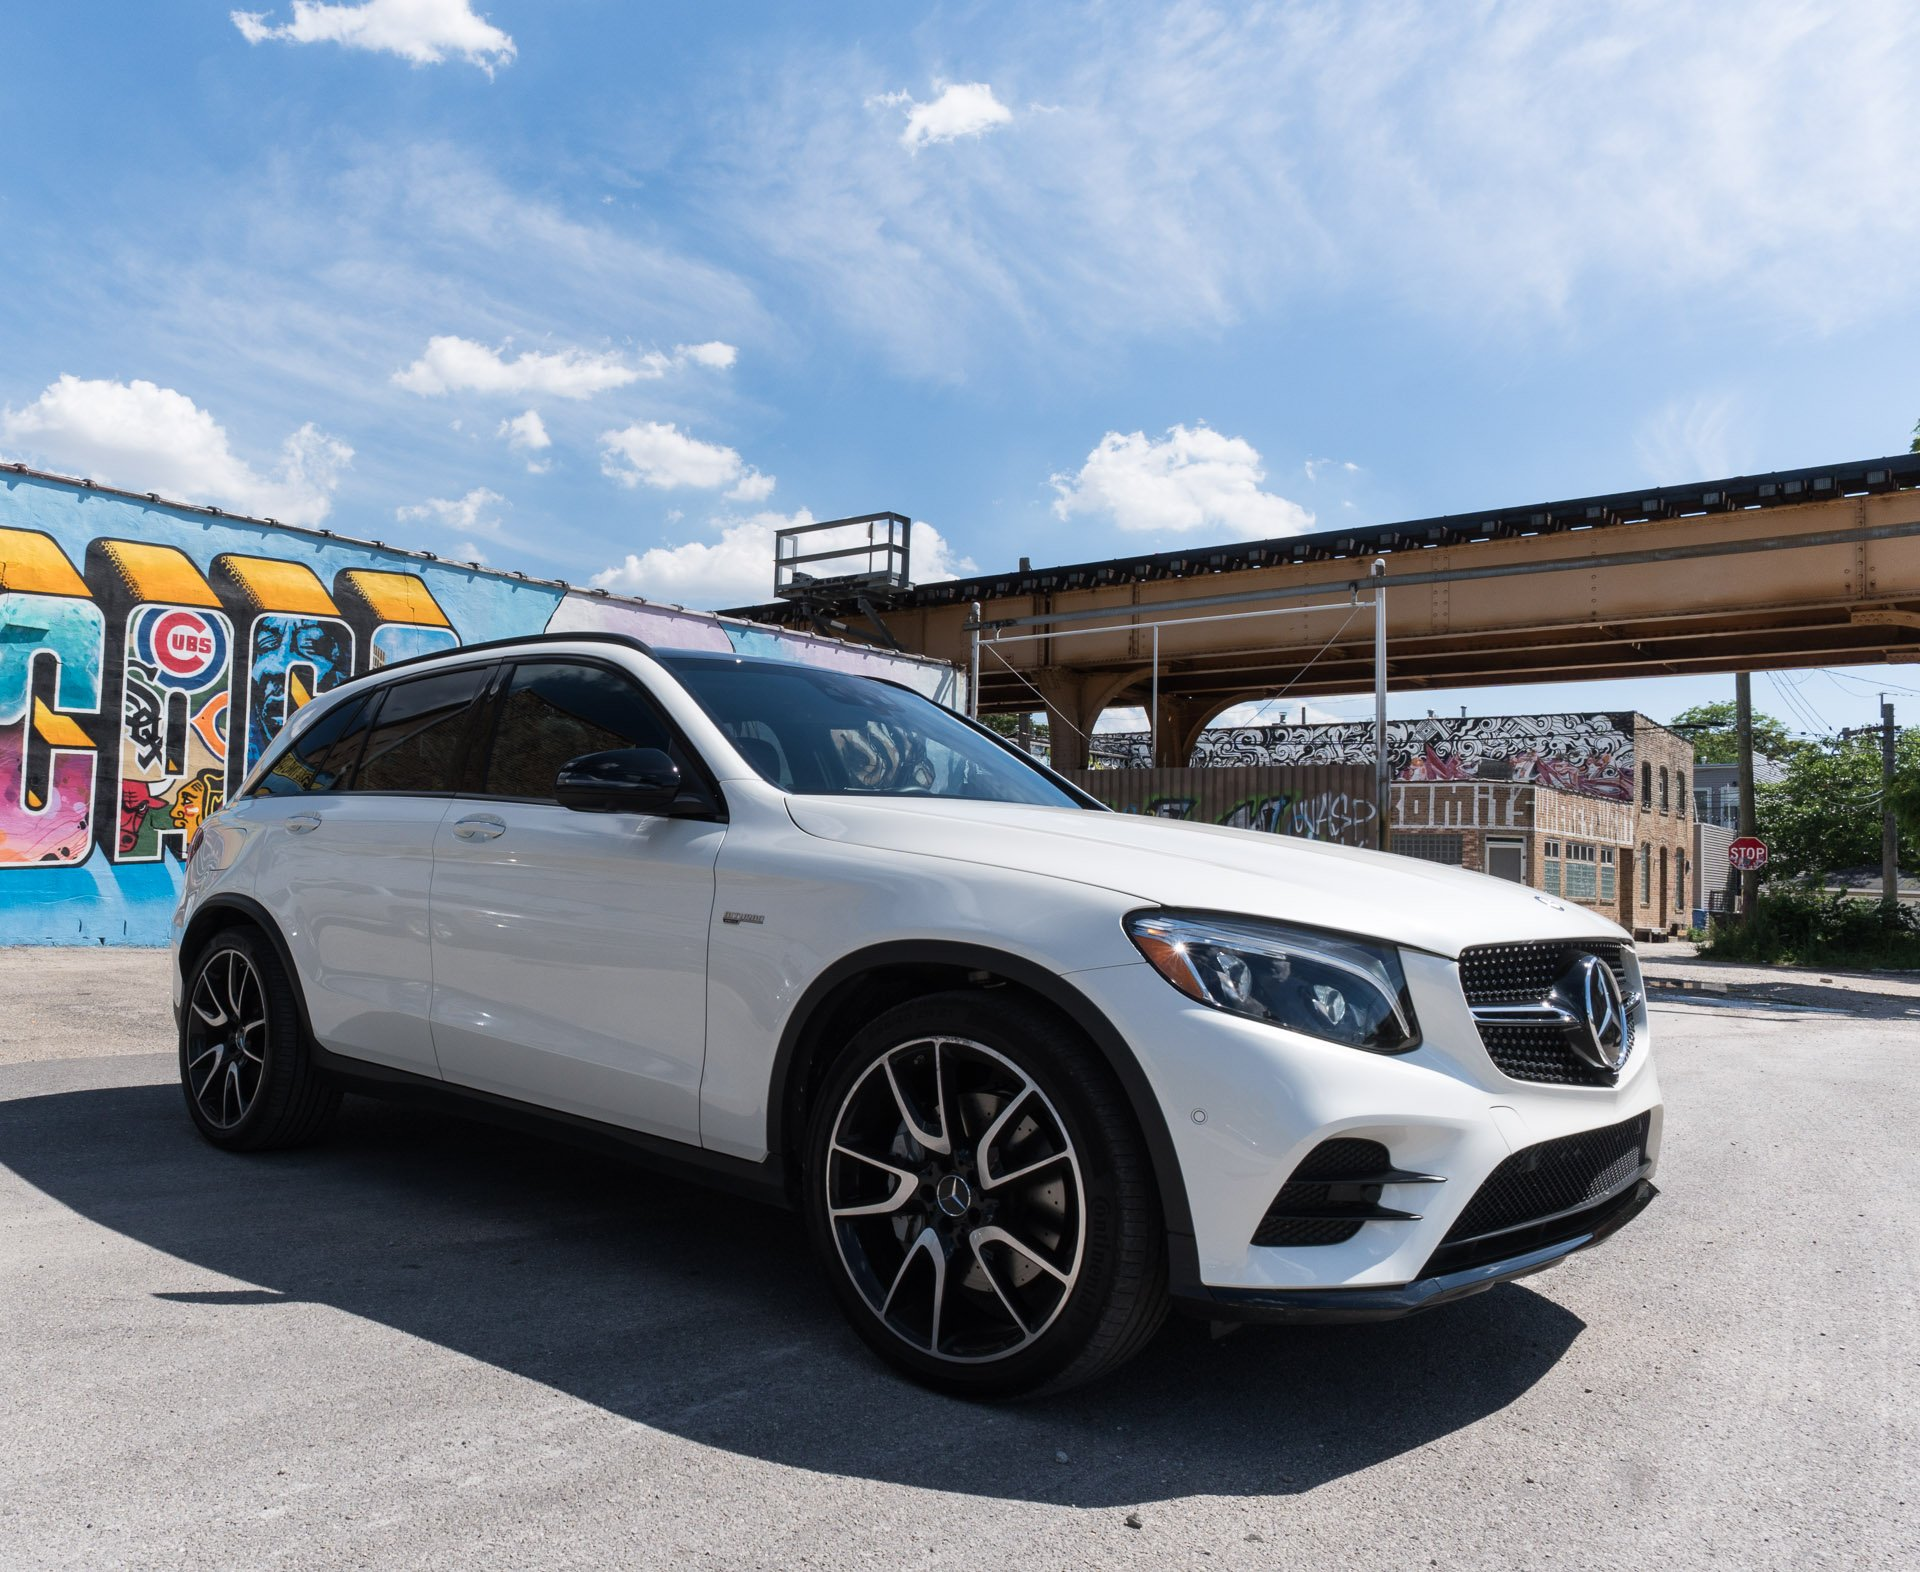 2017 Mercedes-AMG GLC43 Review: Power Meets Practicality